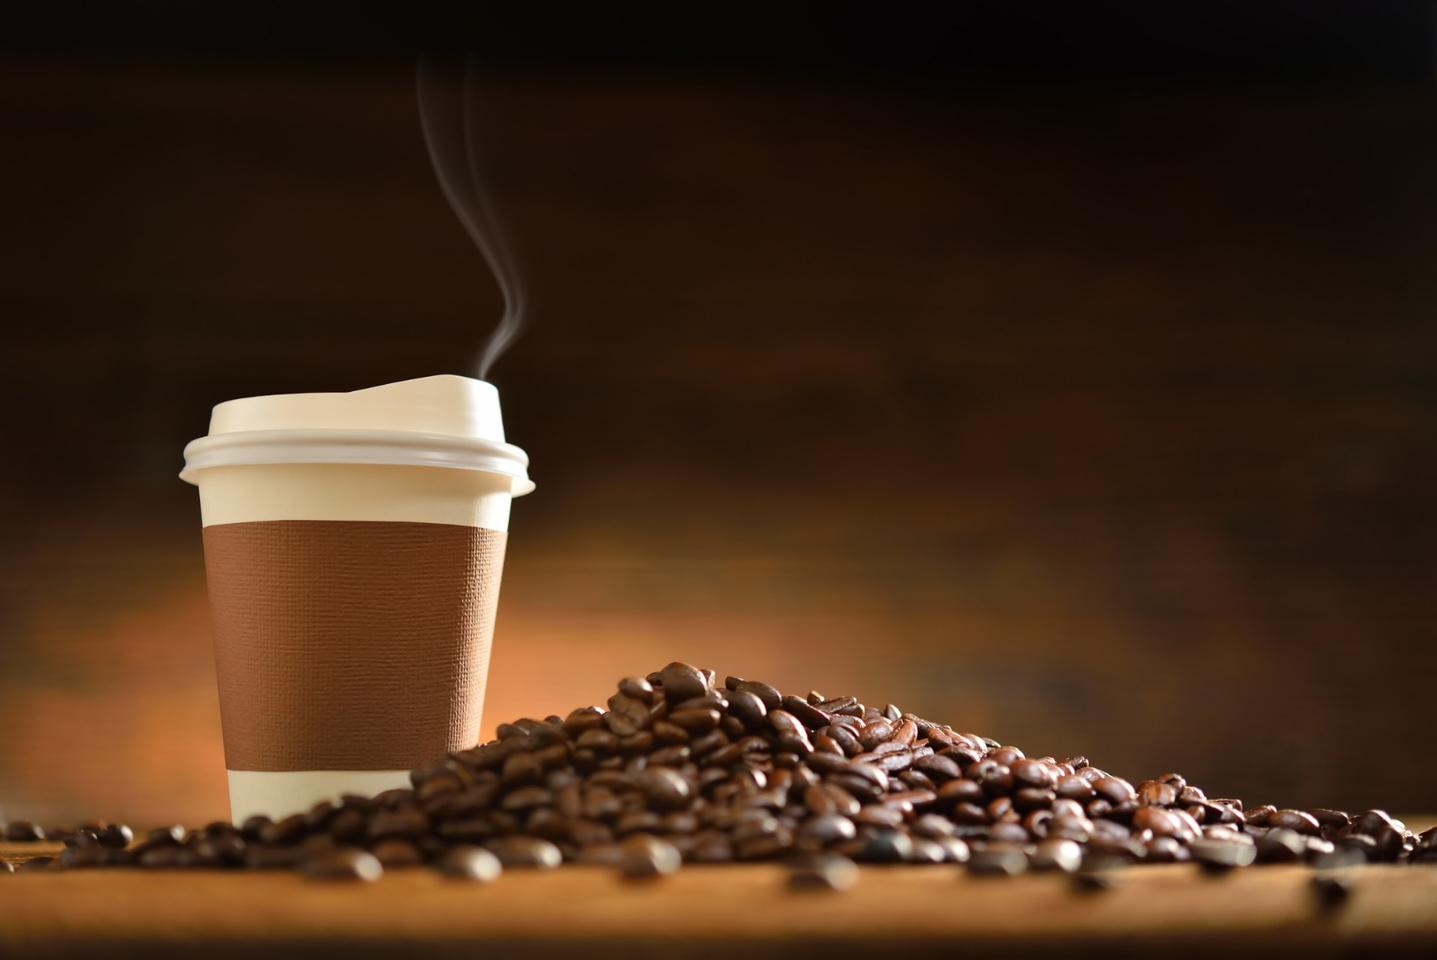 A recent court decision ruling Californian coffee shops must accompany all coffee sales with a cancer risk warning has been potentially overturned by a government regulatory agency